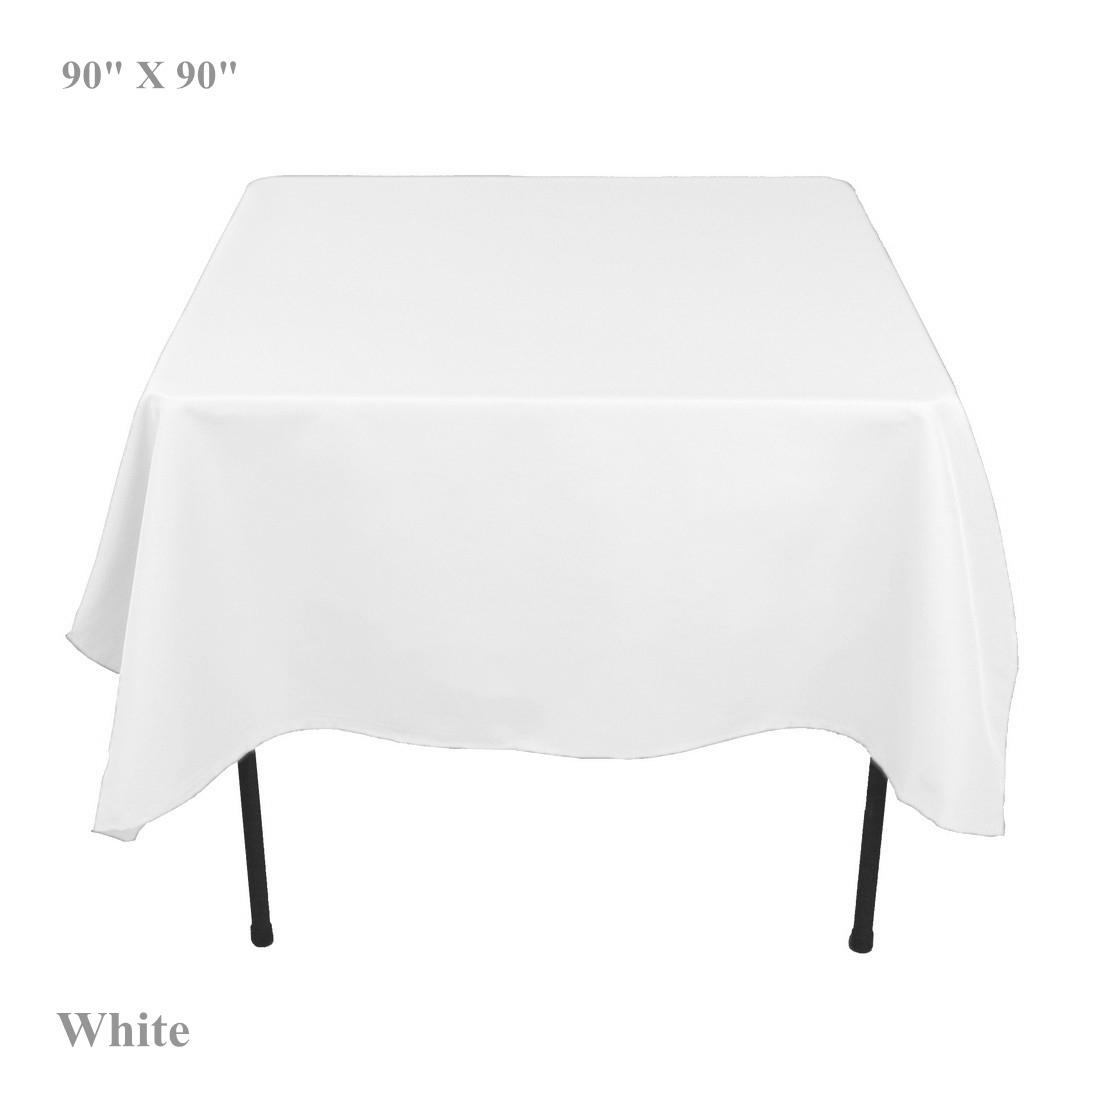 christmas tablecloth 90 x 90 square polyester white ivory black table cover cloth home party dining room 60 round tablecloths circular tablecloths from - Square Christmas Tablecloth